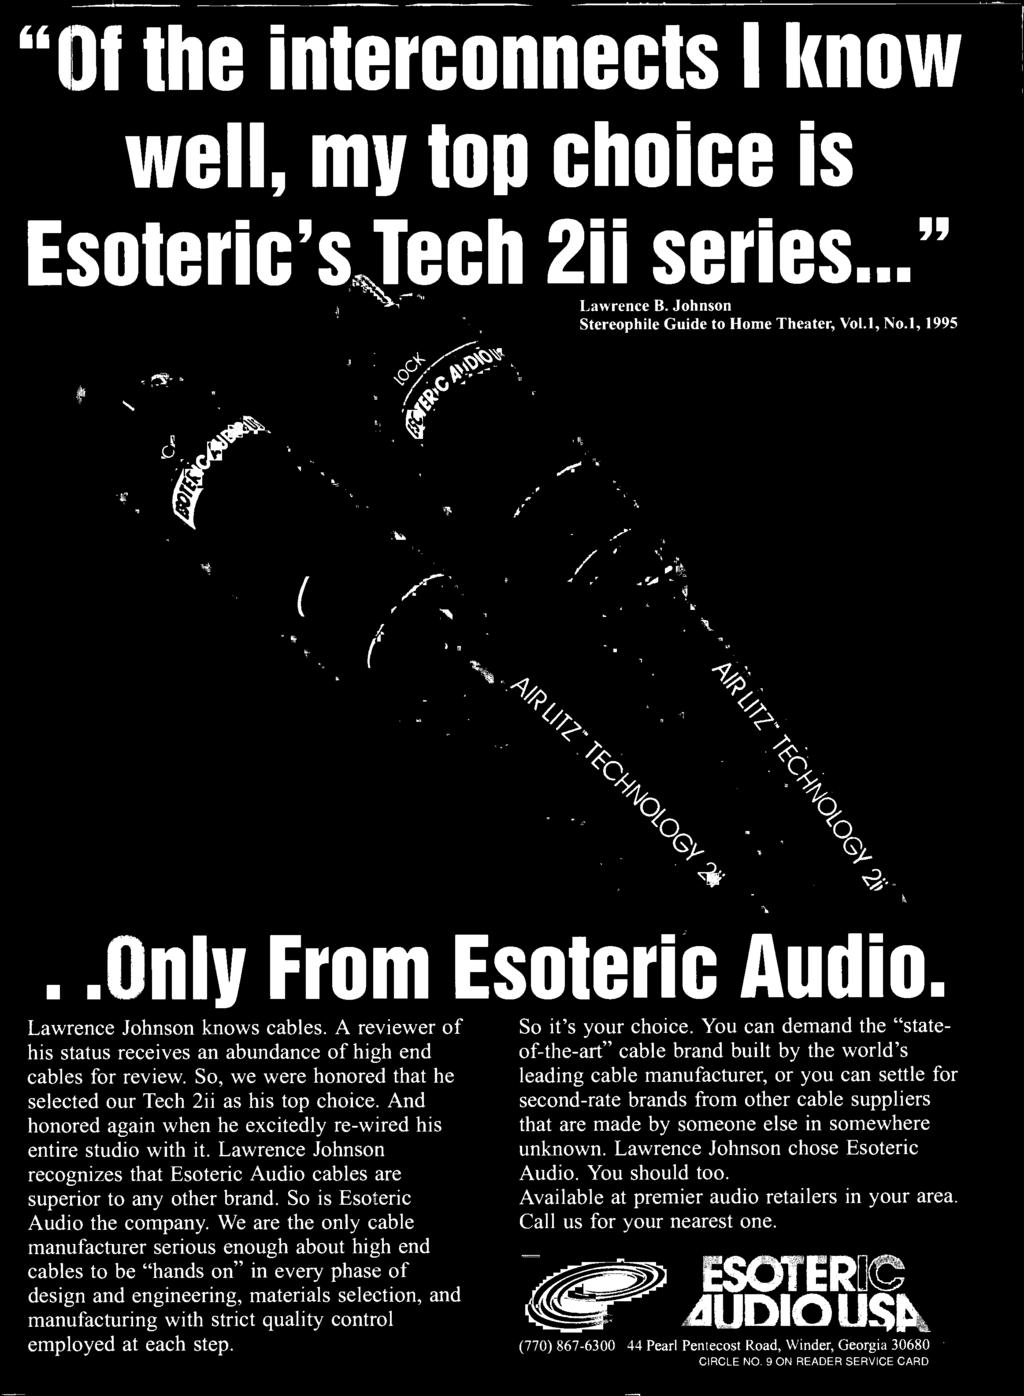 And honored again when he excitedly re -wired his entire studio with it. Lawrence Johnson recognizes that Esoteric Audio cables are superior to any other brand. So is Esoteric Audio the company.